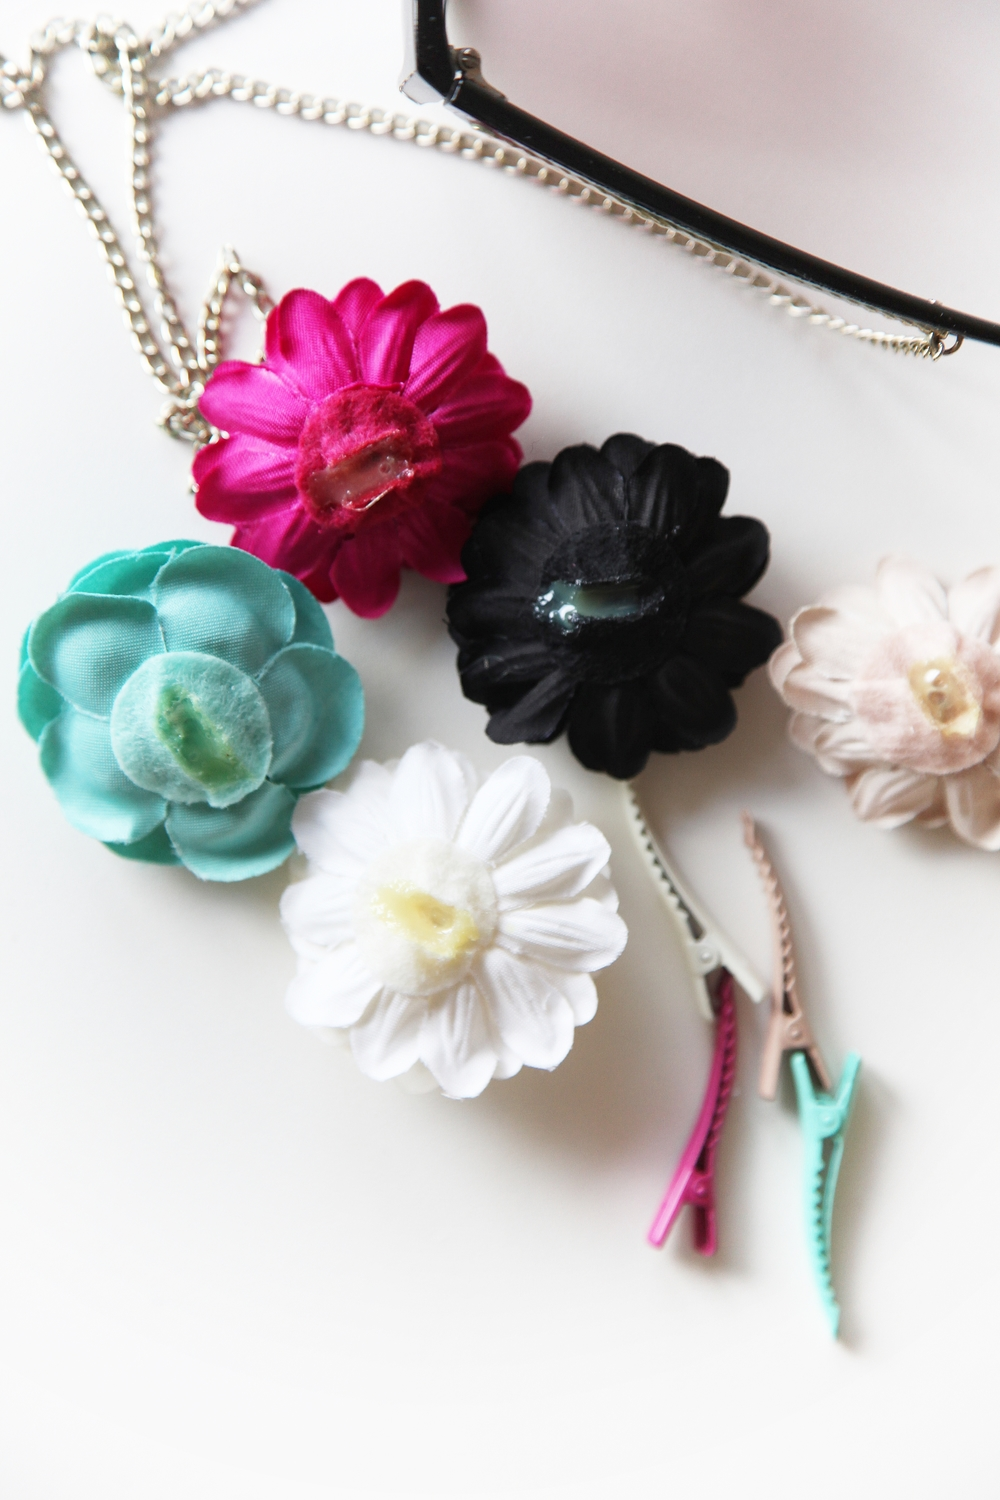 H&M floral hairpins glue